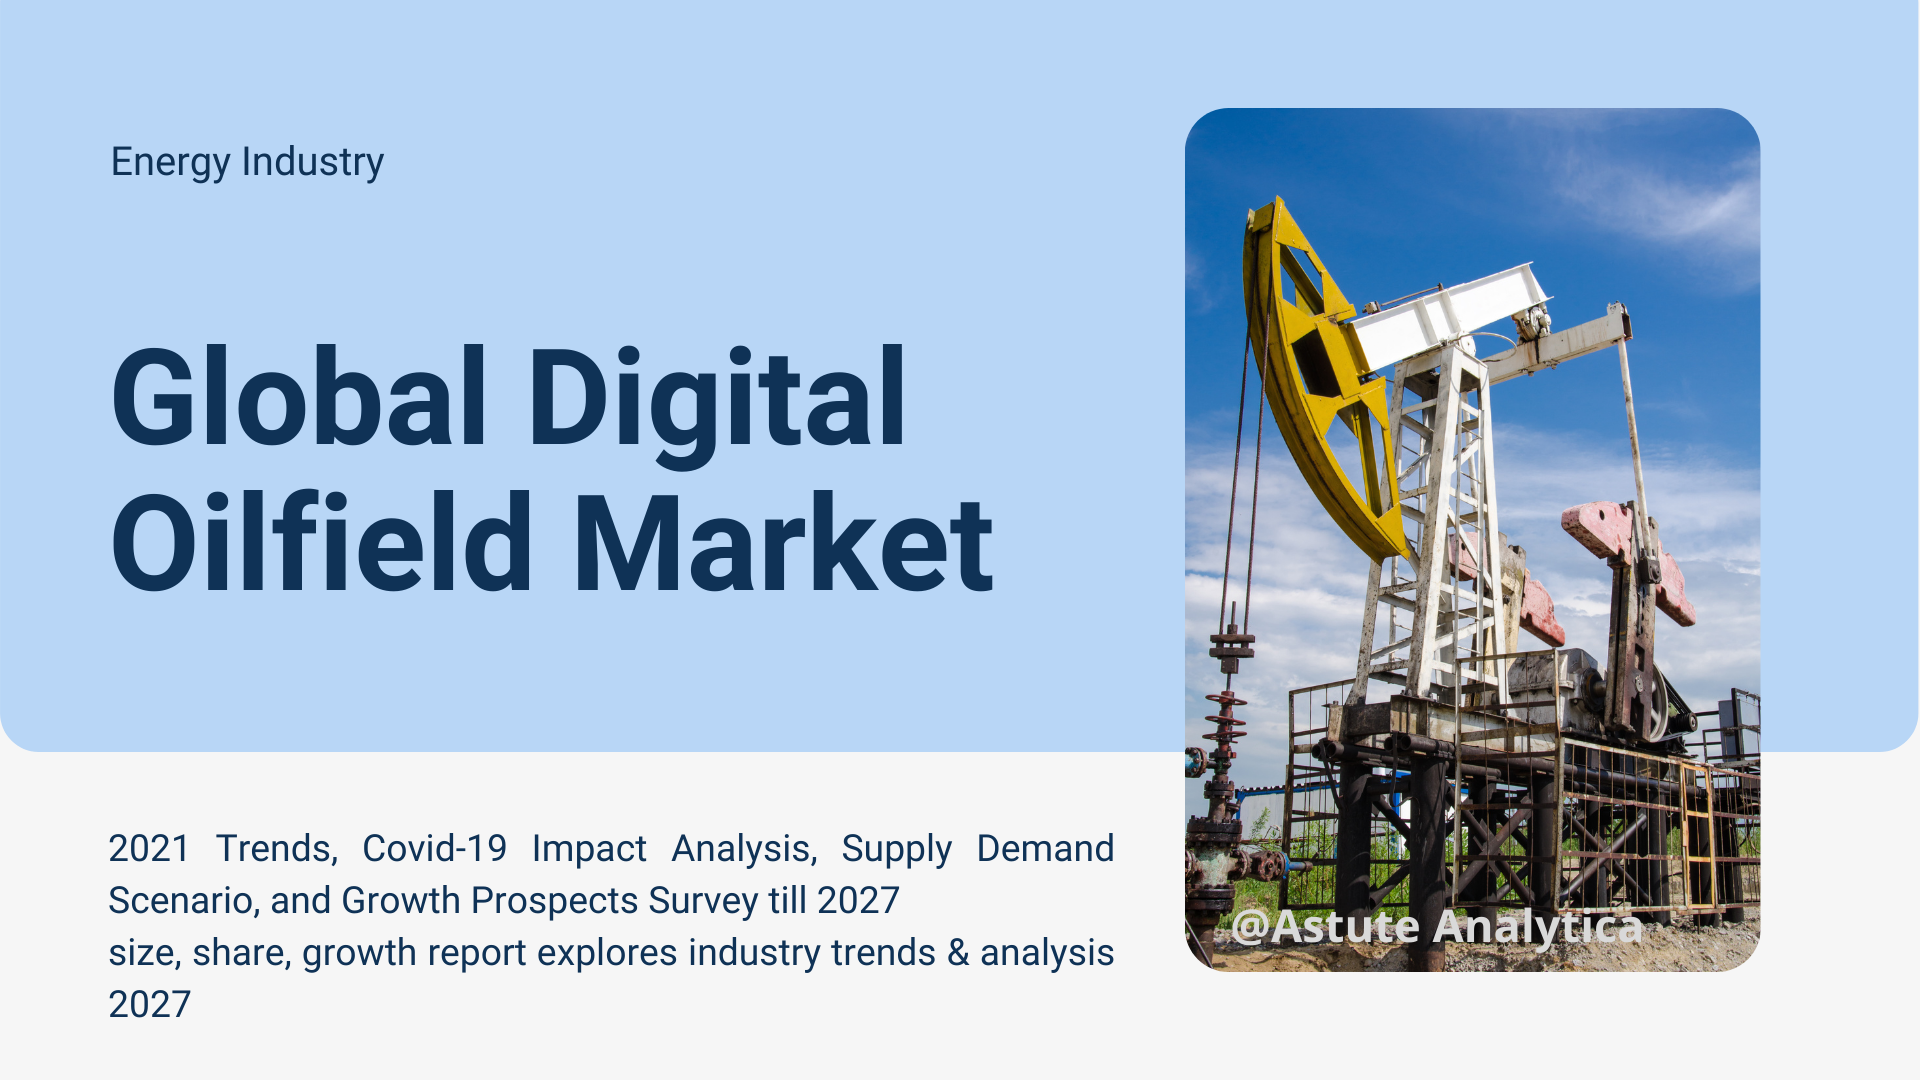 What are sales, revenue, and price analysis of top manufacturers of Digital Oilfield Global market?